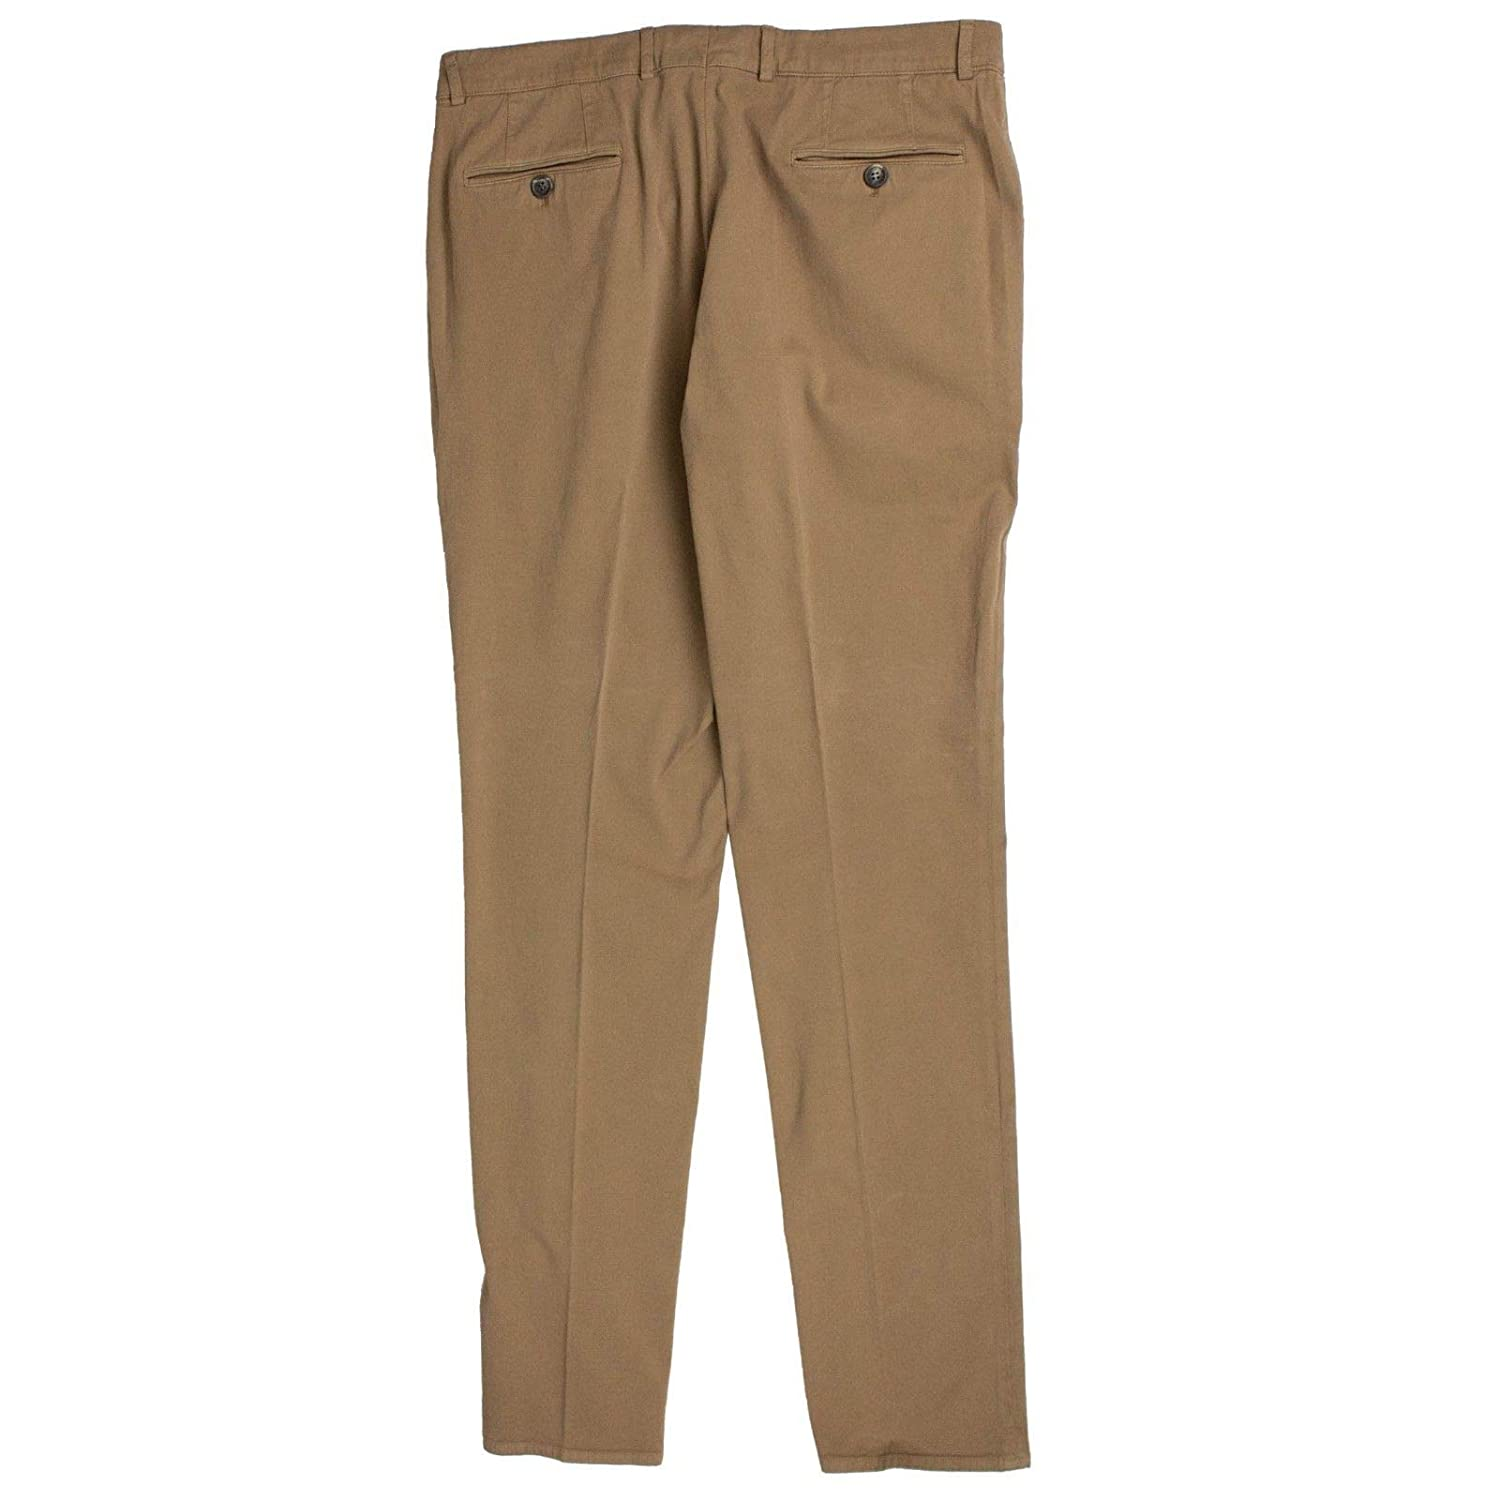 Brunello Cucinelli Mens Cotton Dress Pants //50 34 Tan